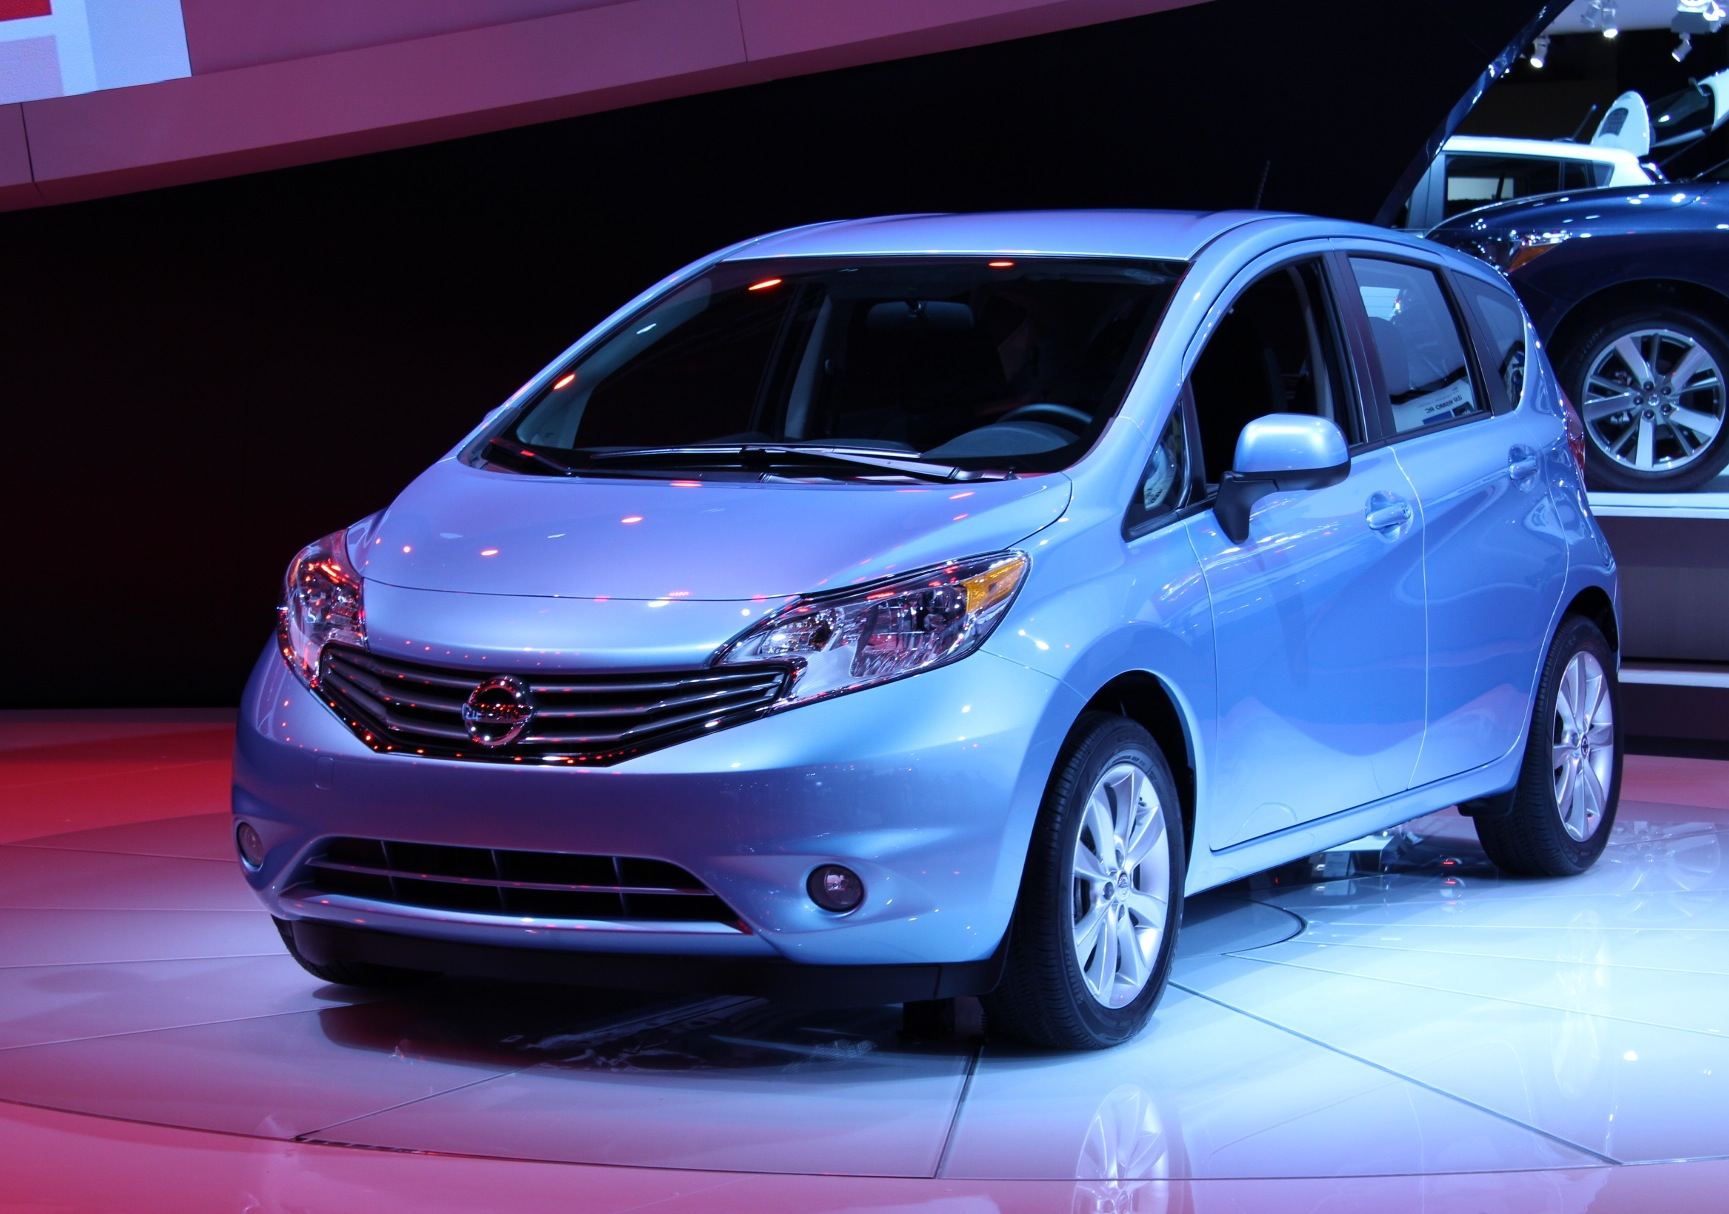 2014 nissan versa note gas mileage drive report. Black Bedroom Furniture Sets. Home Design Ideas